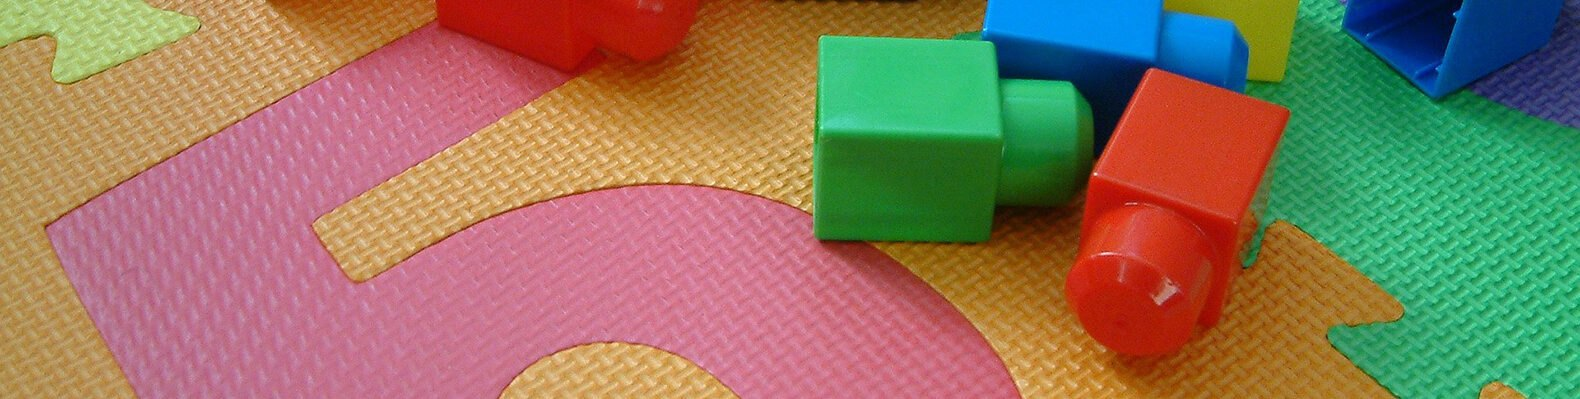 plastic block toys on a plastic mat